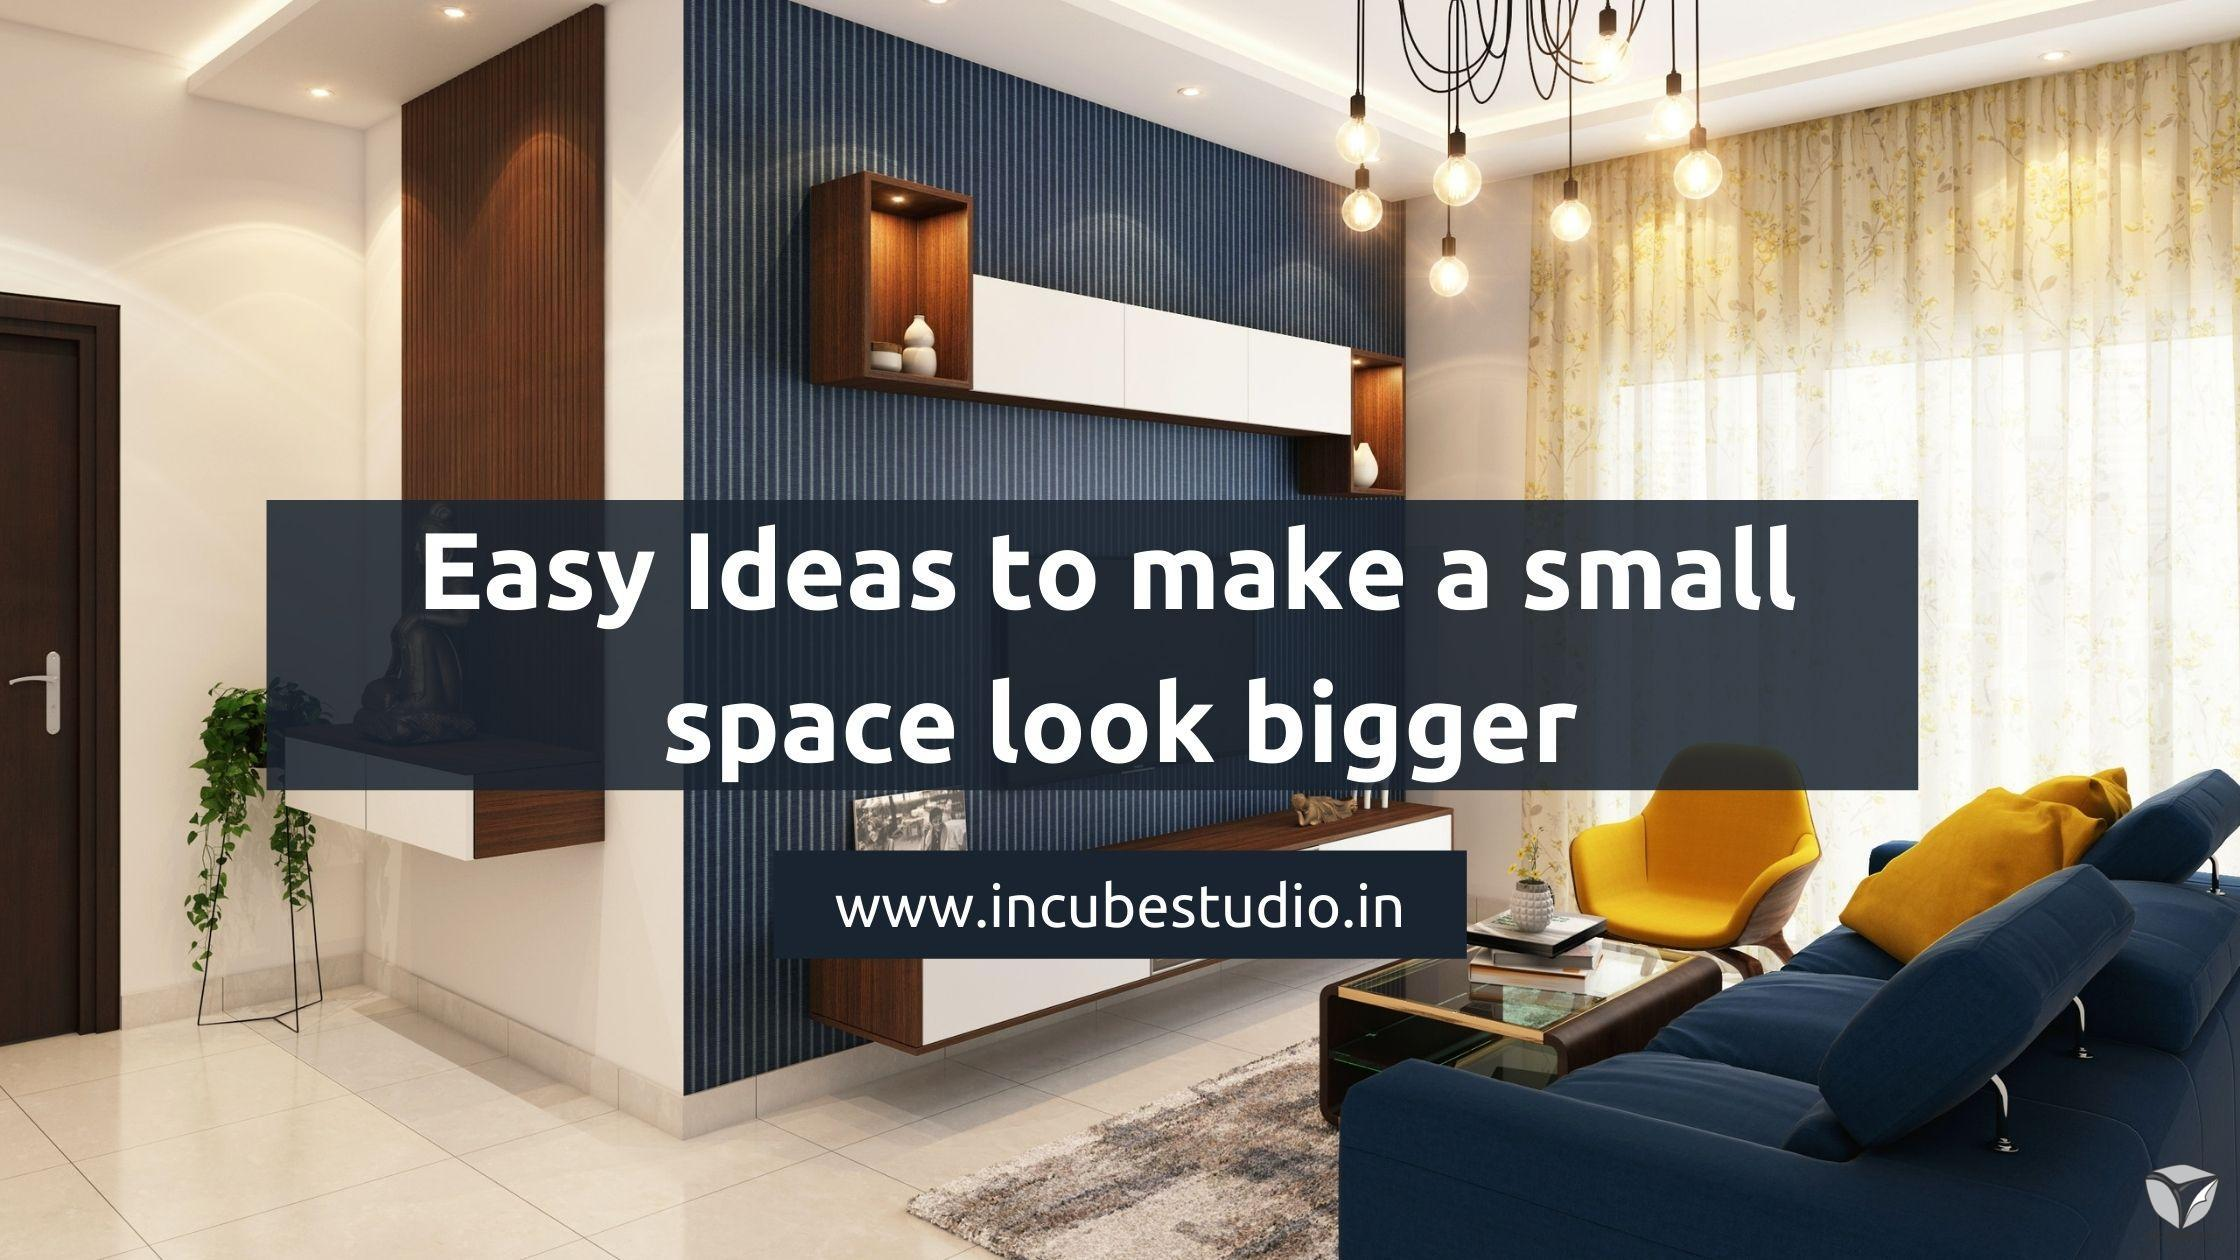 Easy ideas to make a small space look Bigger